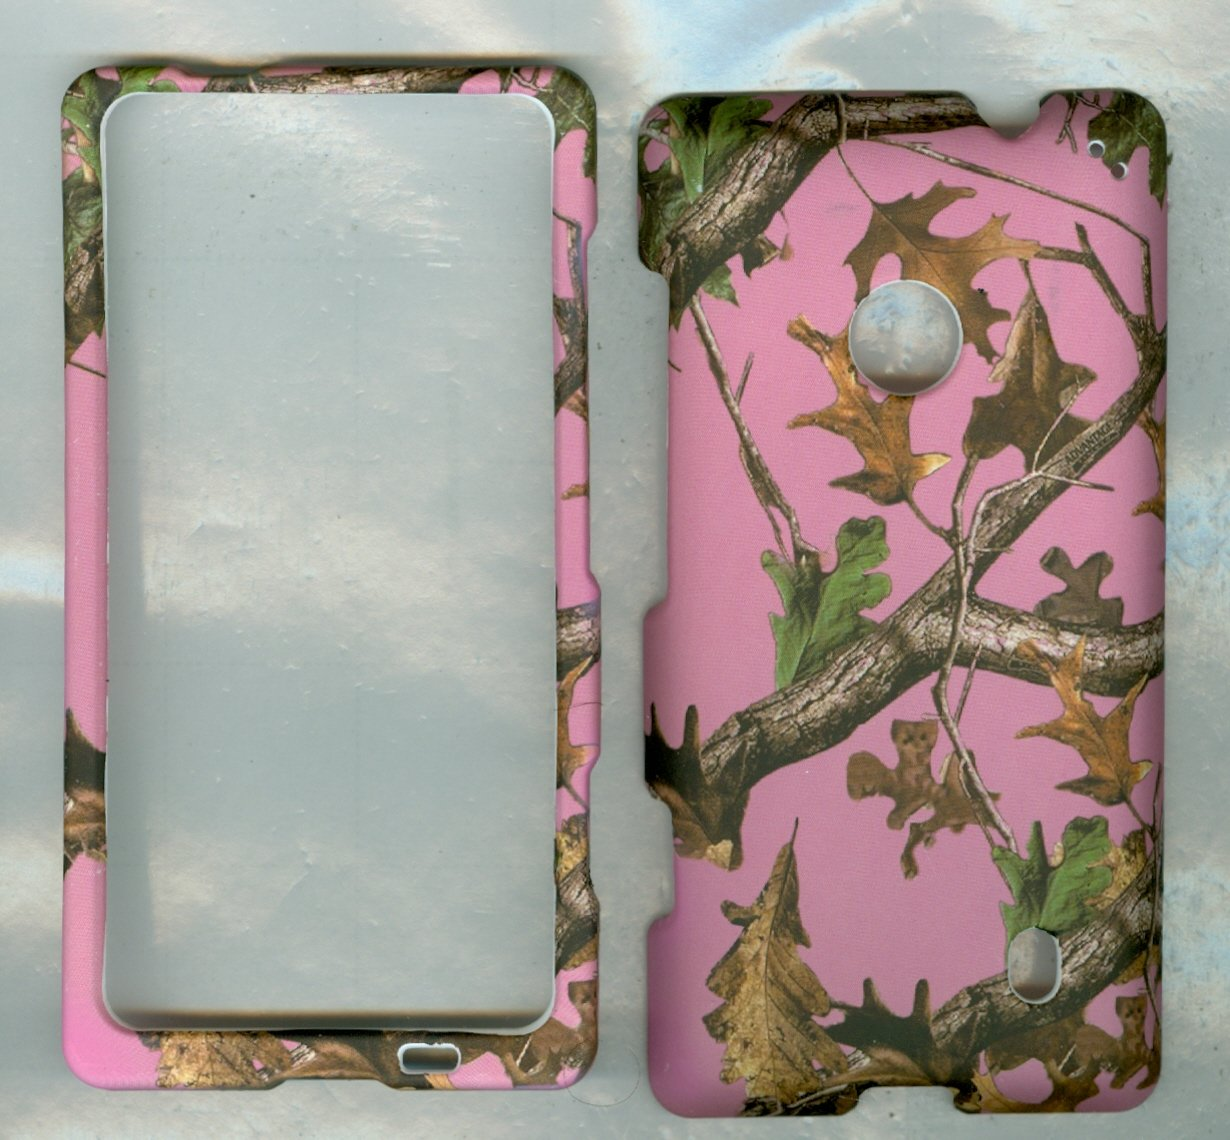 NOKIA-LUMIA-521-520-T-MOBILE-AT-T-METRO-PCS-PHONE-CASE-COVER-FACEPLATE-PROTECTOR-HARD-RUBBERIZED-SNAP-ON-CAMO-PINK-ADVANTAGE-TREE-HUNTER-NEW